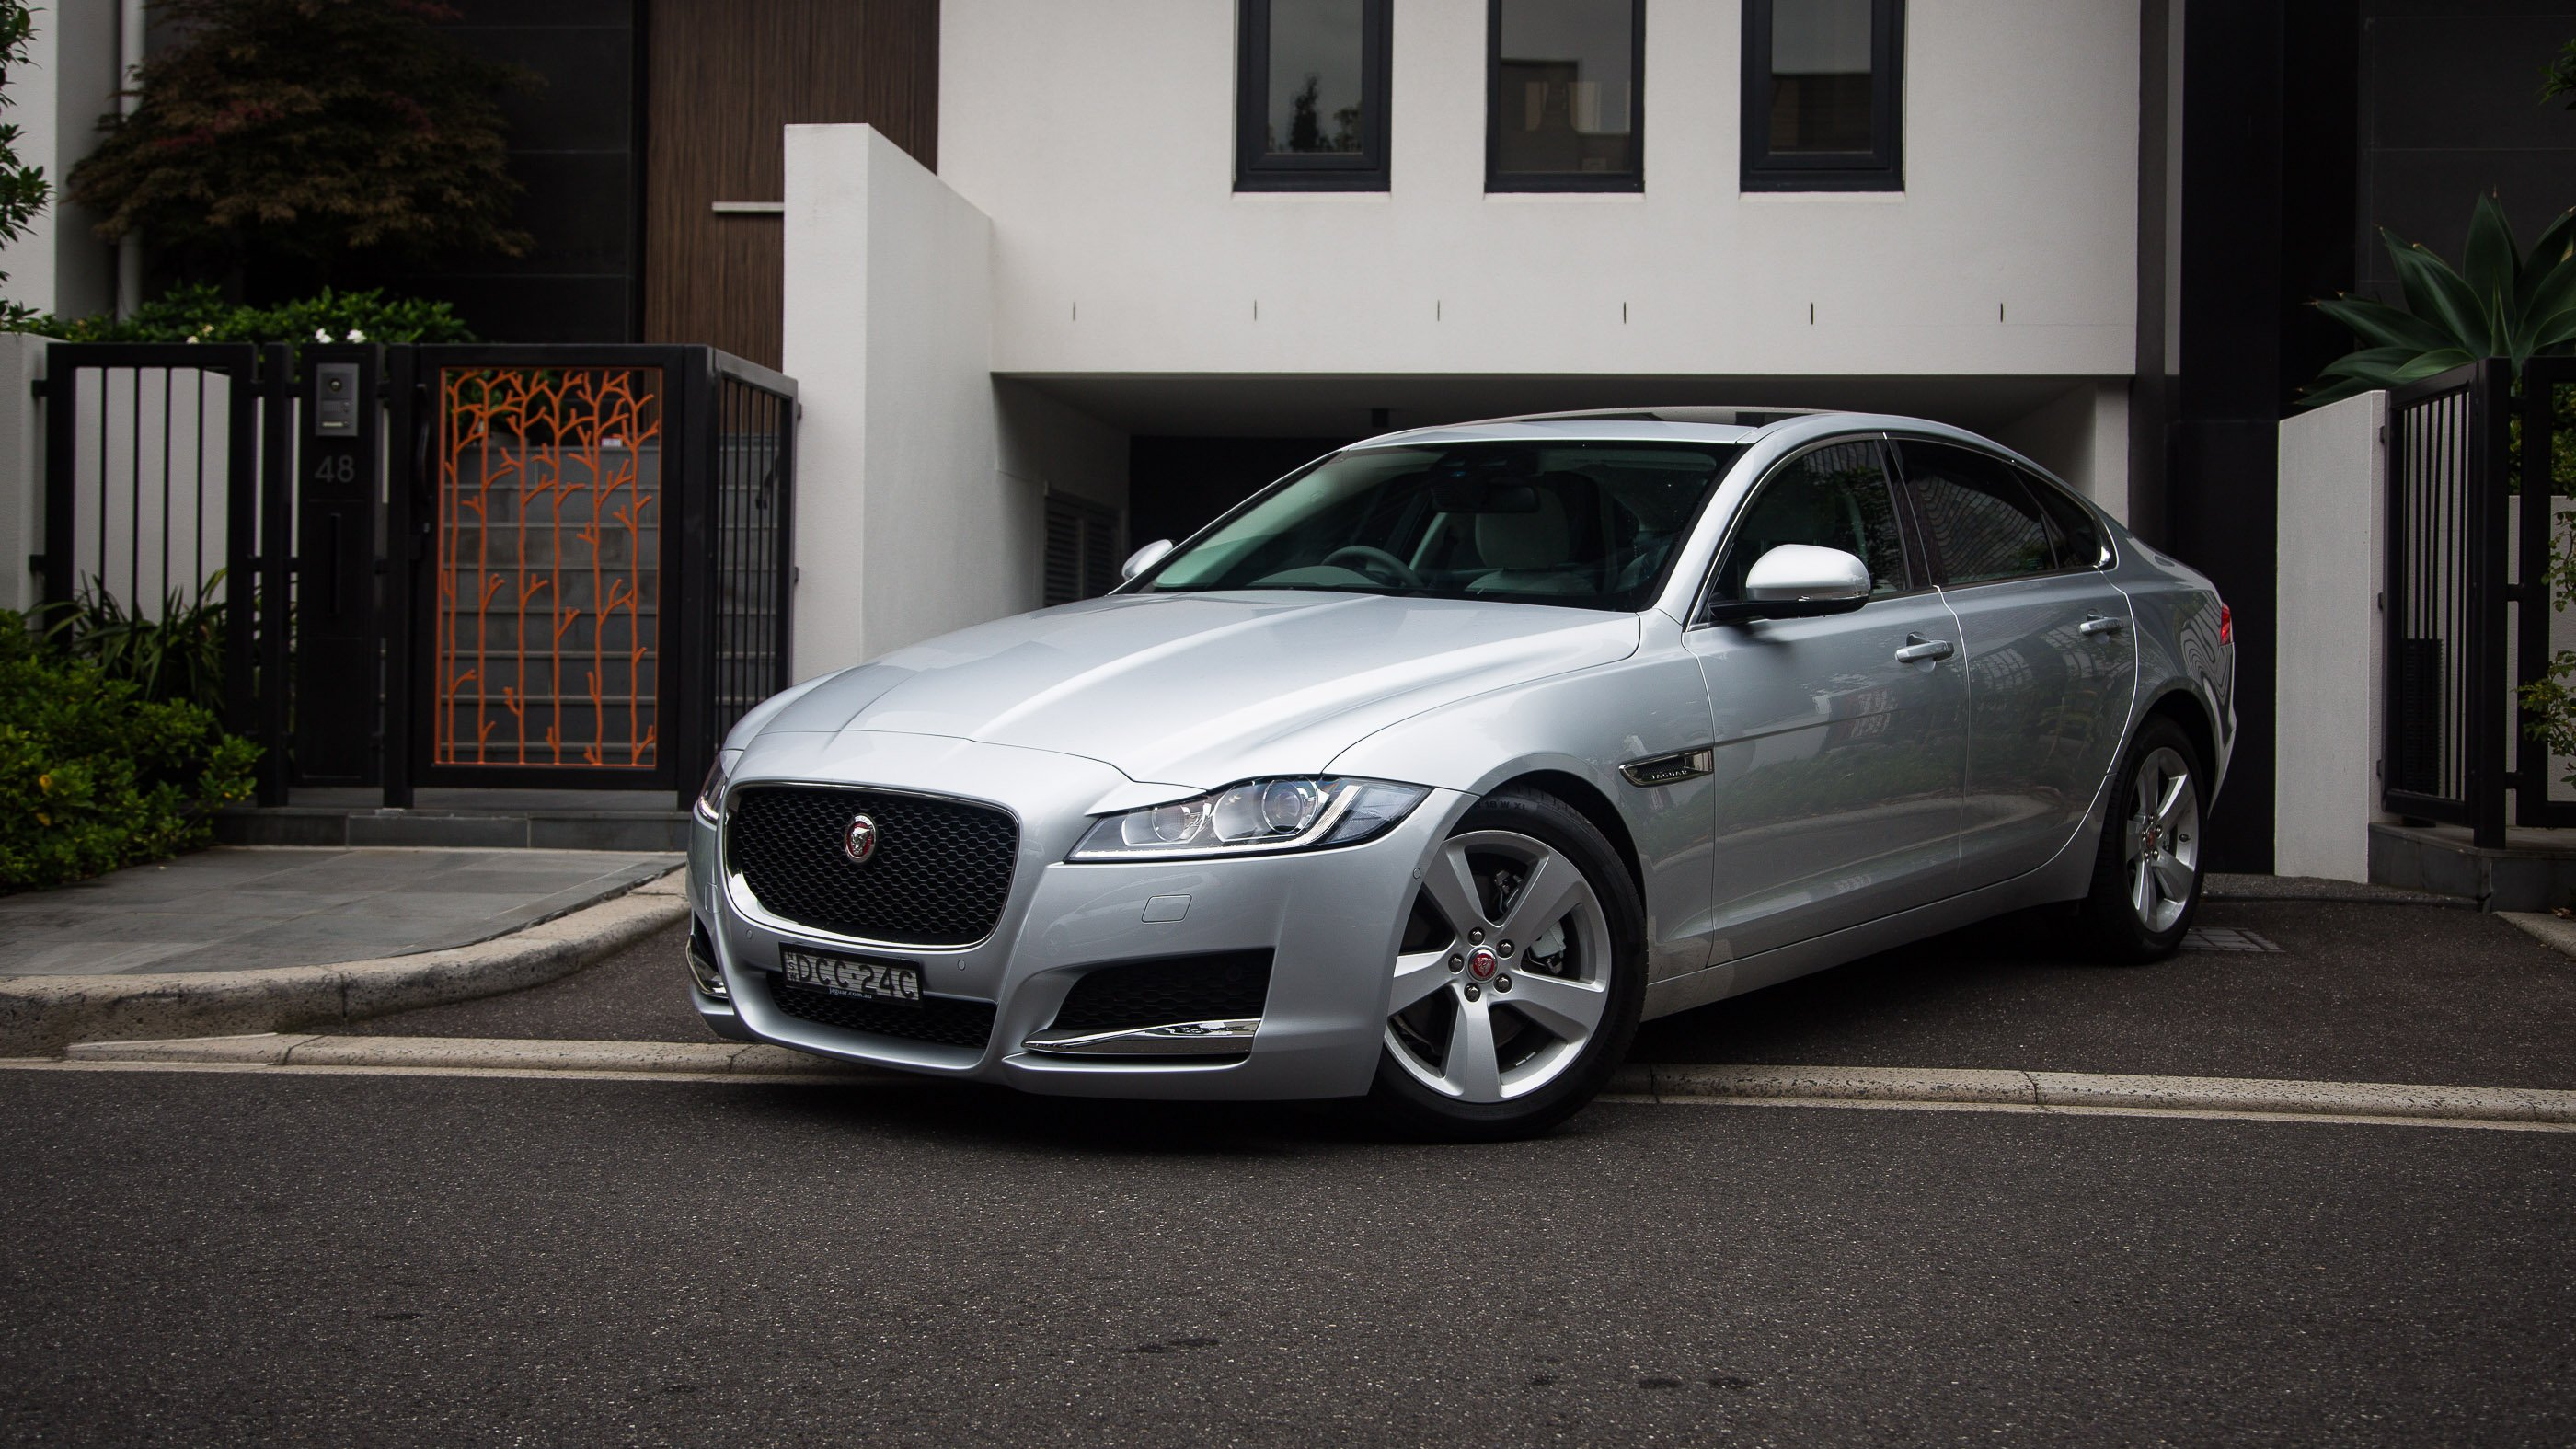 2016 jaguar xf 20d prestige review caradvice. Black Bedroom Furniture Sets. Home Design Ideas